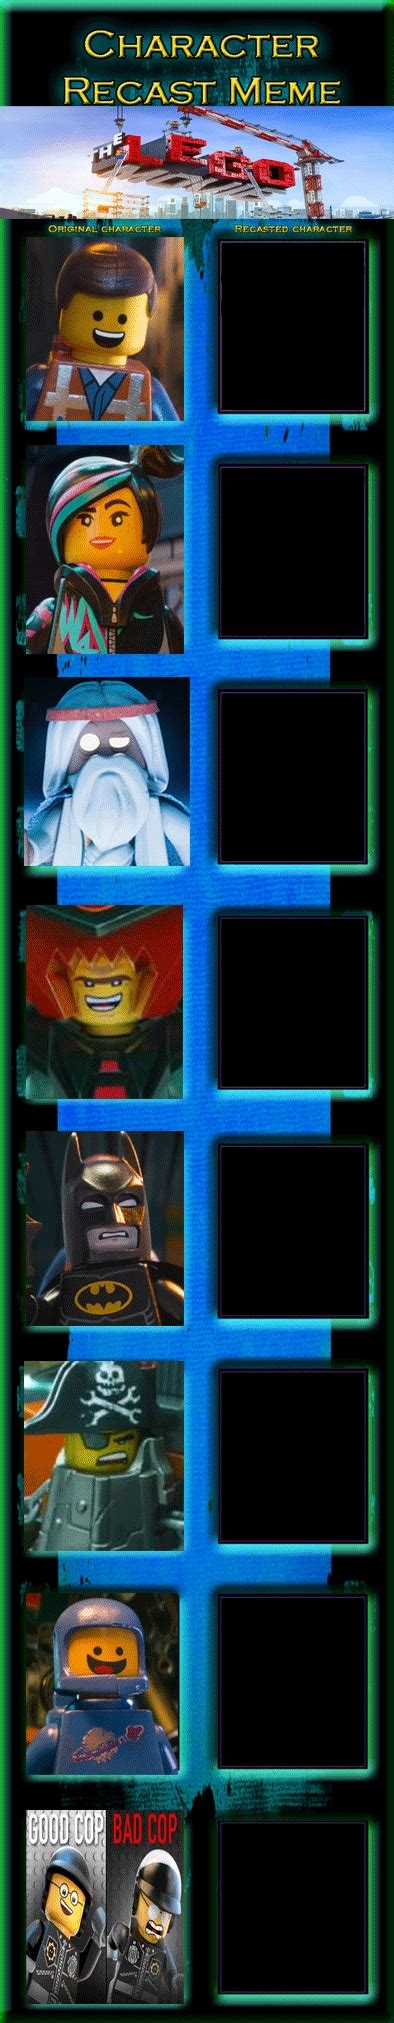 The Lego Movie Meme - recastmeme explore recastmeme on deviantart